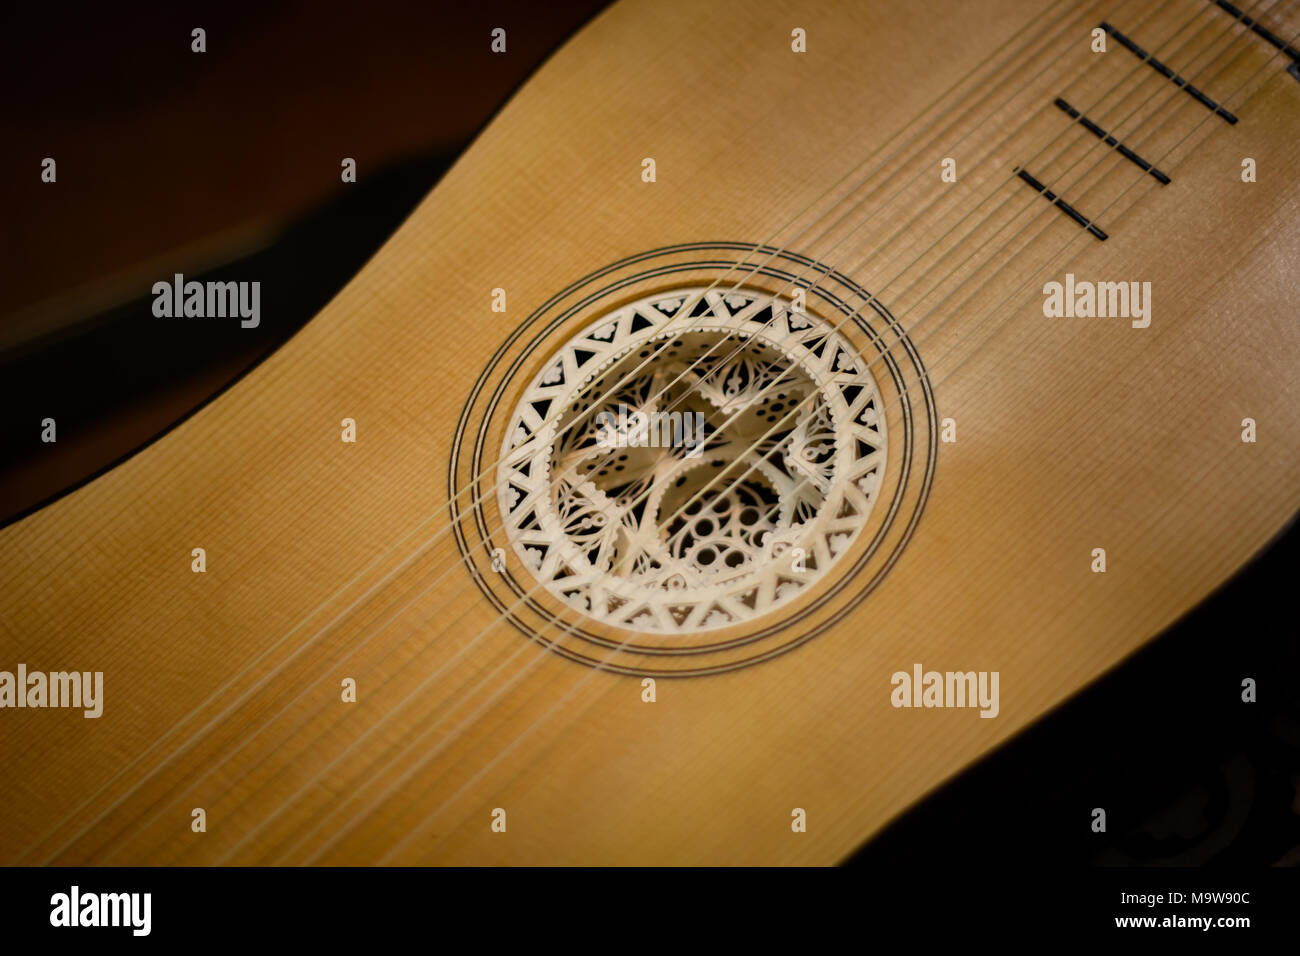 Lute - early music instrument in Brussels Belgium - Stock Image